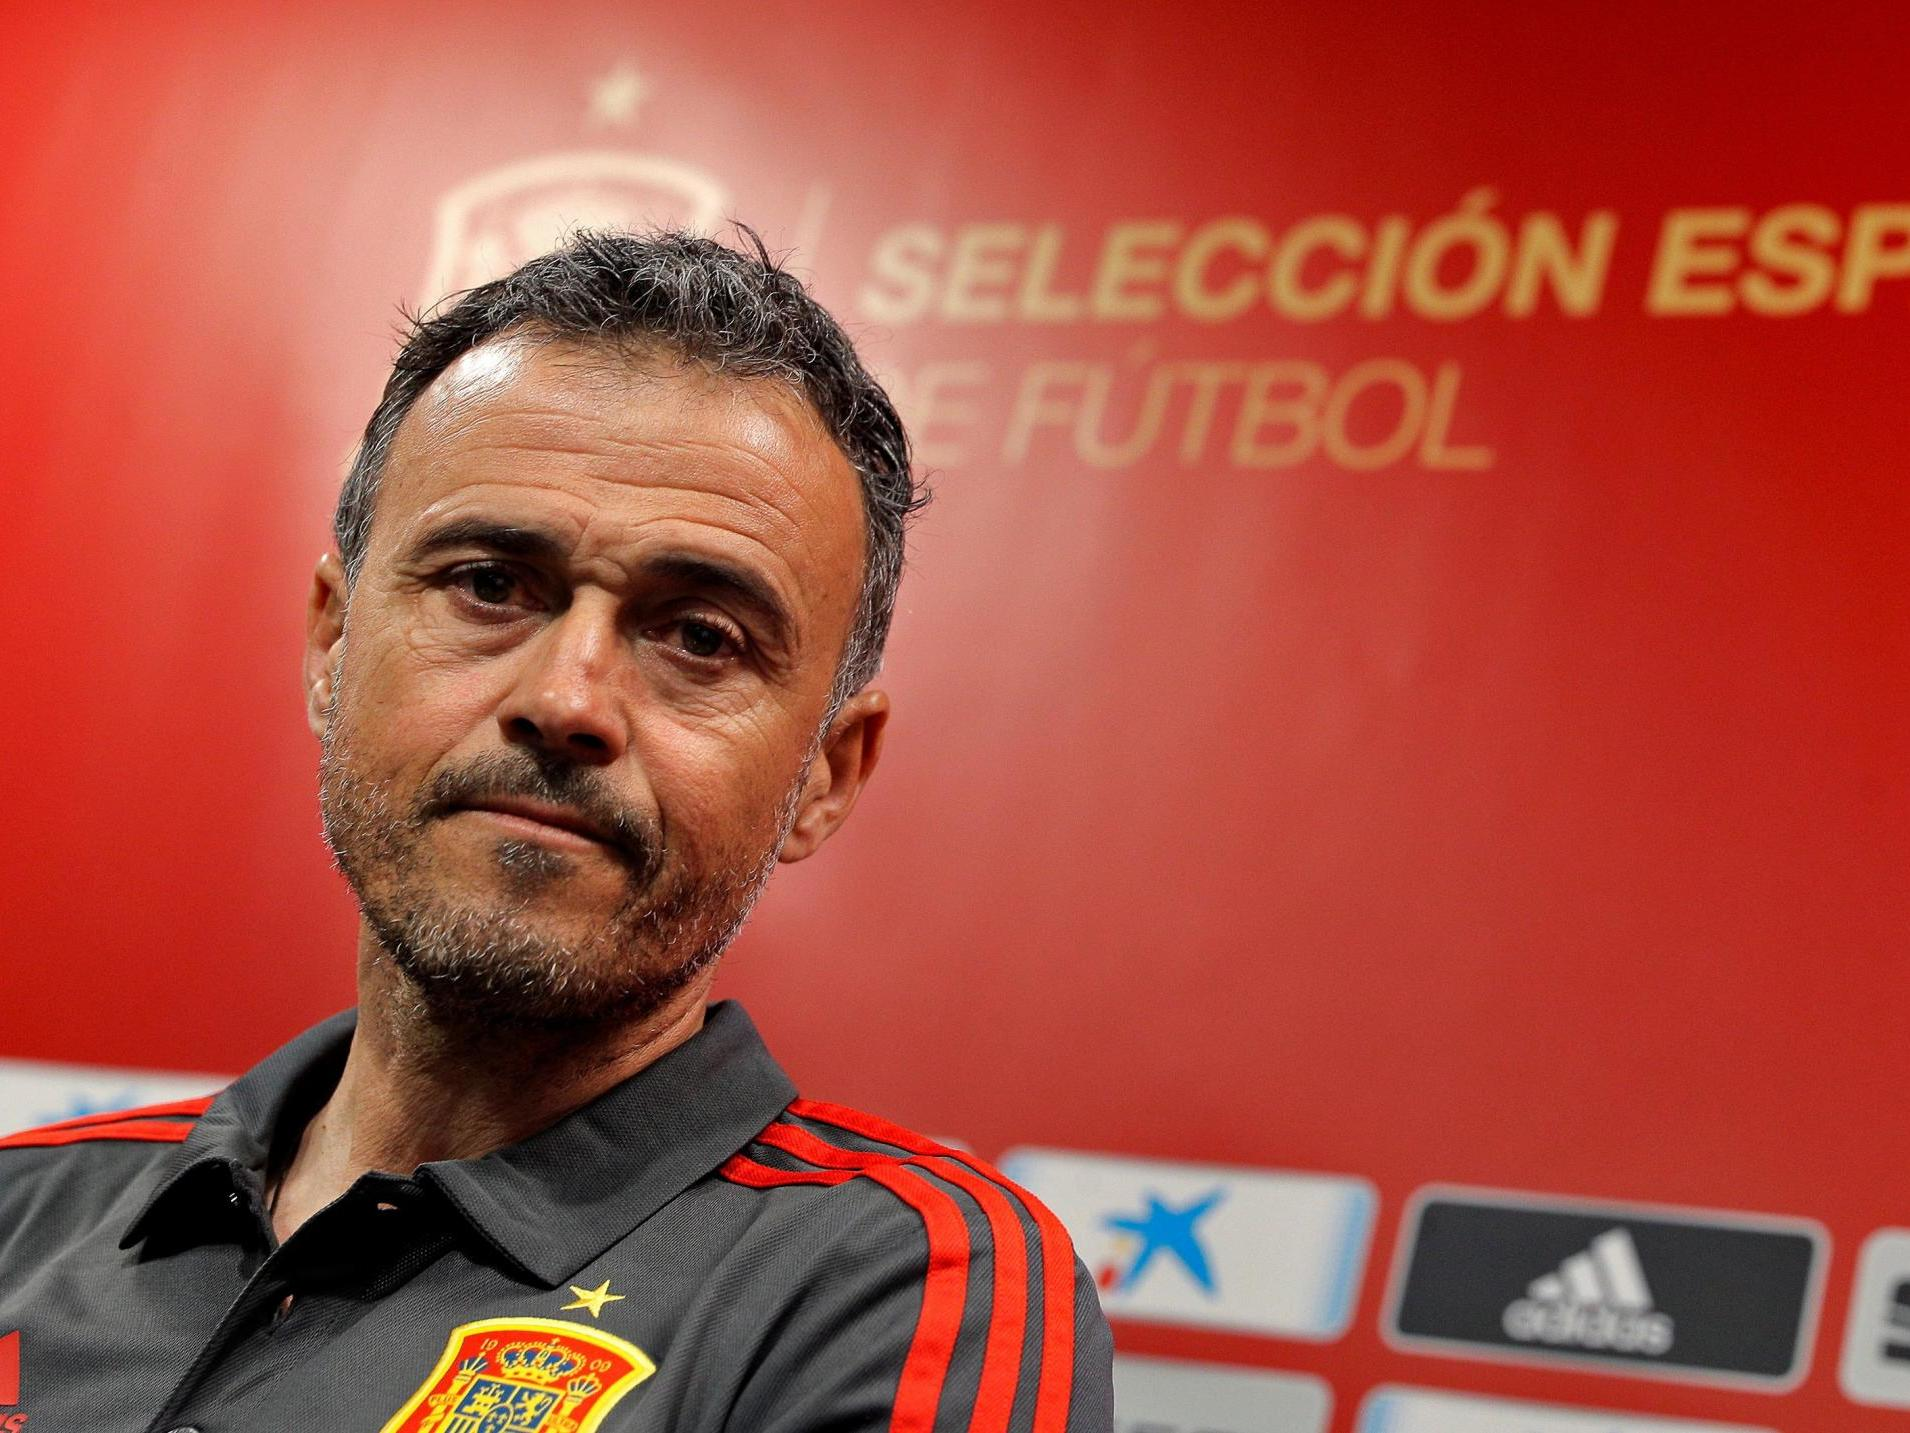 Luis Enrique: Spanish FA announce manager's departure for personal reasons with former assistant Robert Moreno his replacement